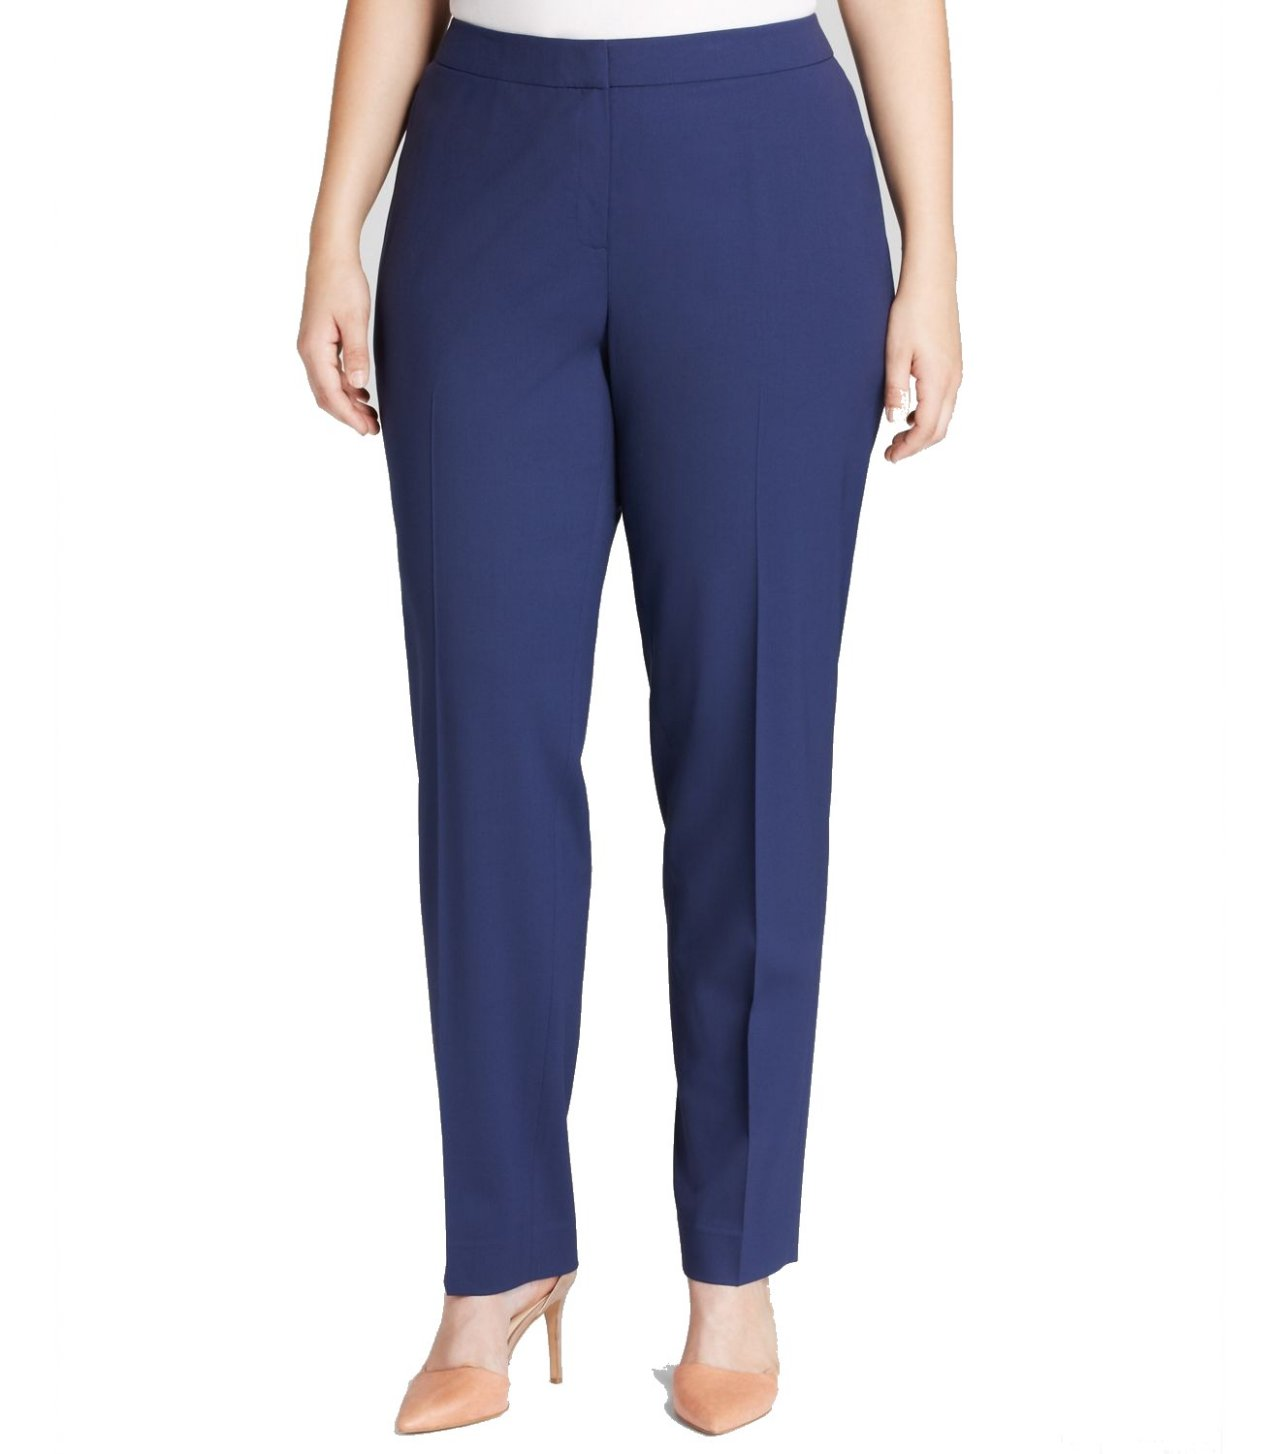 Unique MidRise Slim Flare Trousers For Women